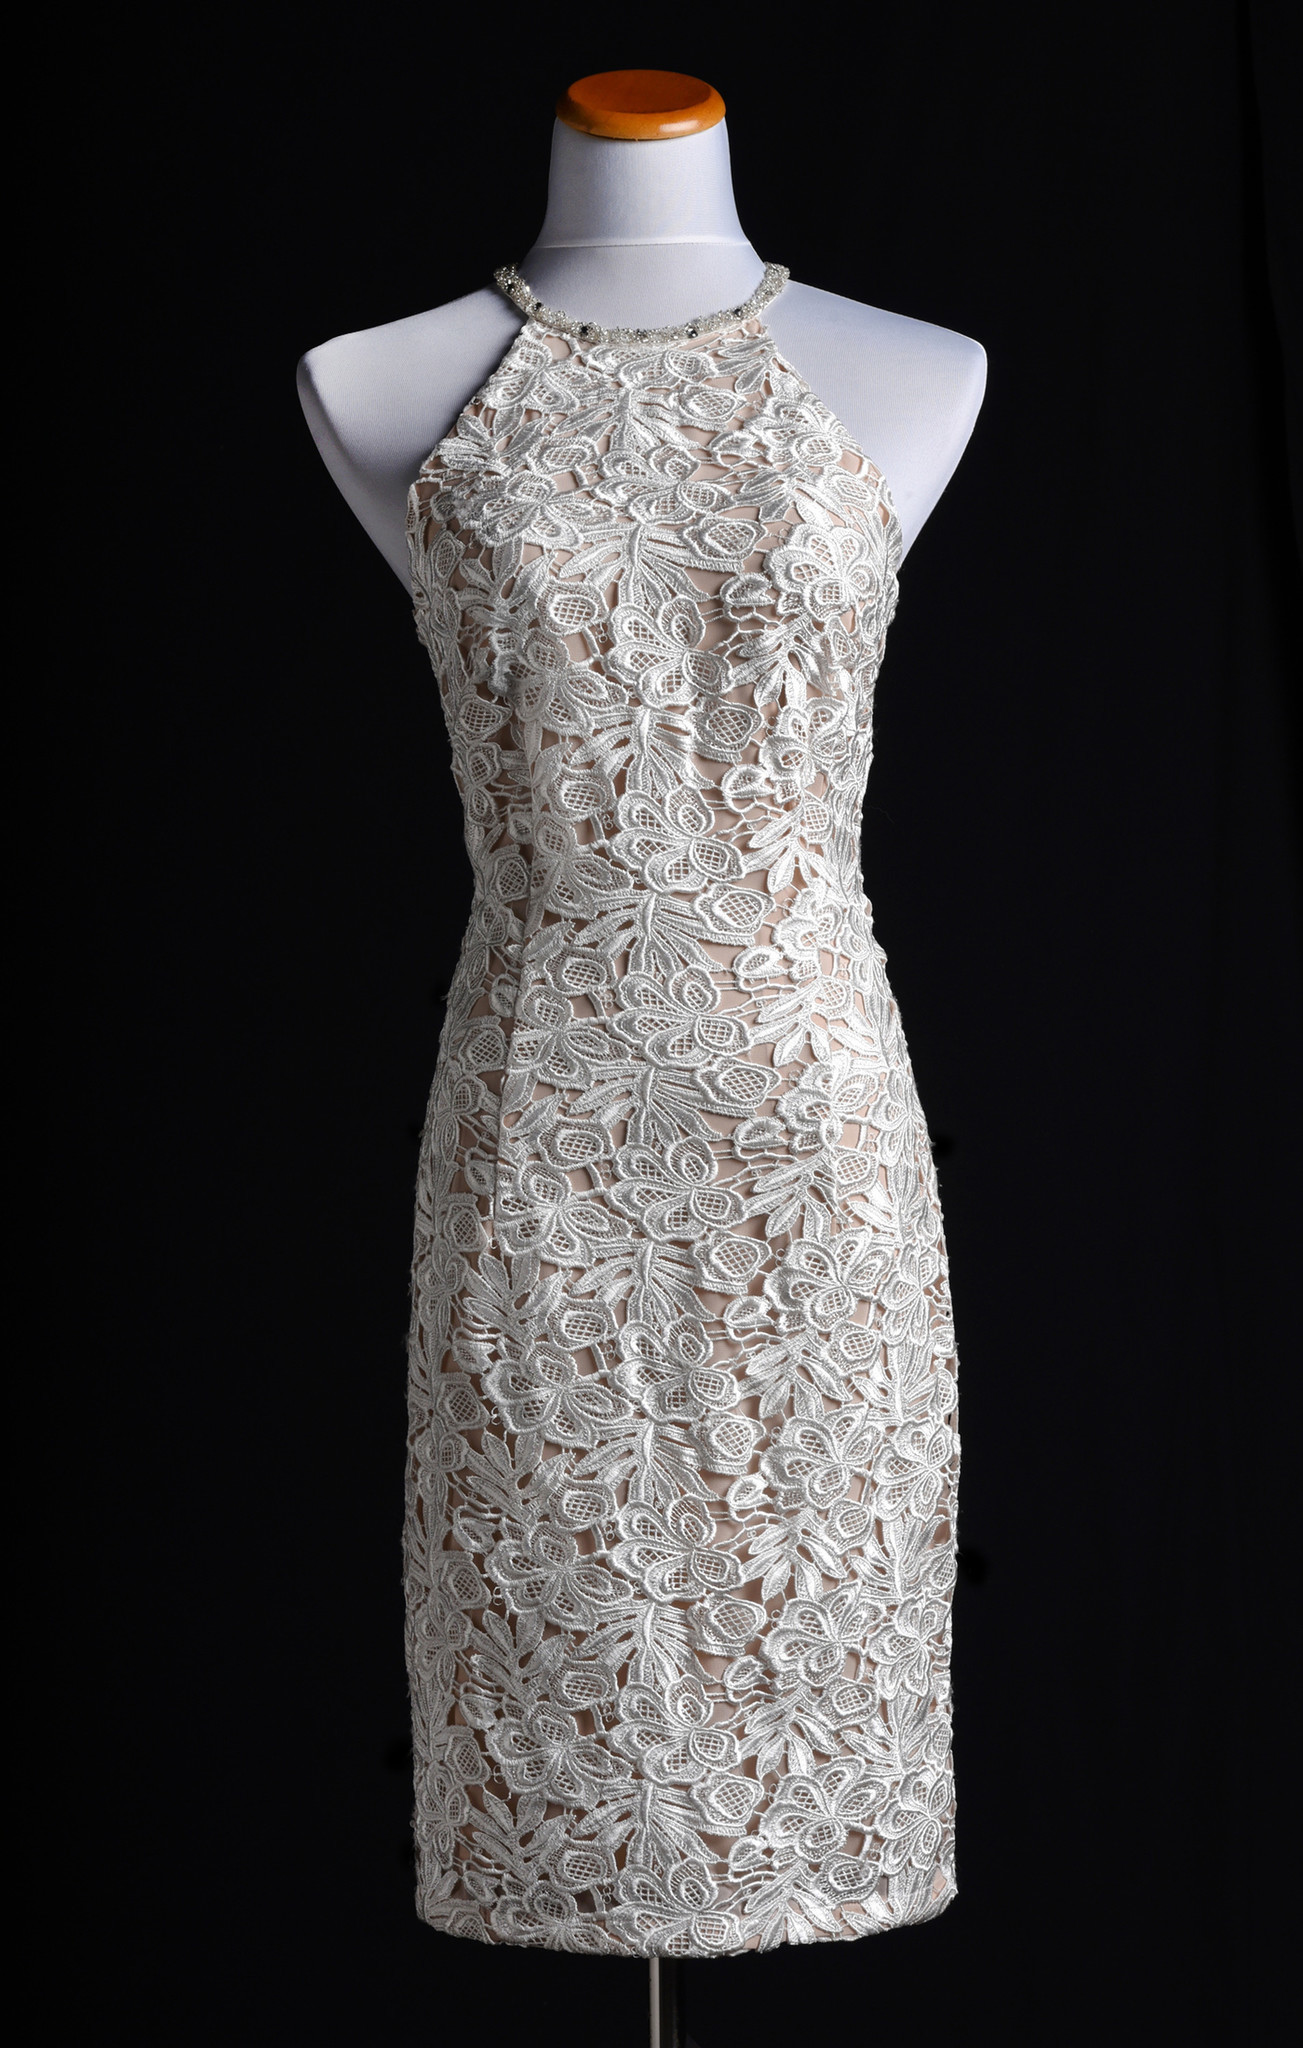 Fashion 5: Cream lace cocktail dress, South Moon Under coverups and ...